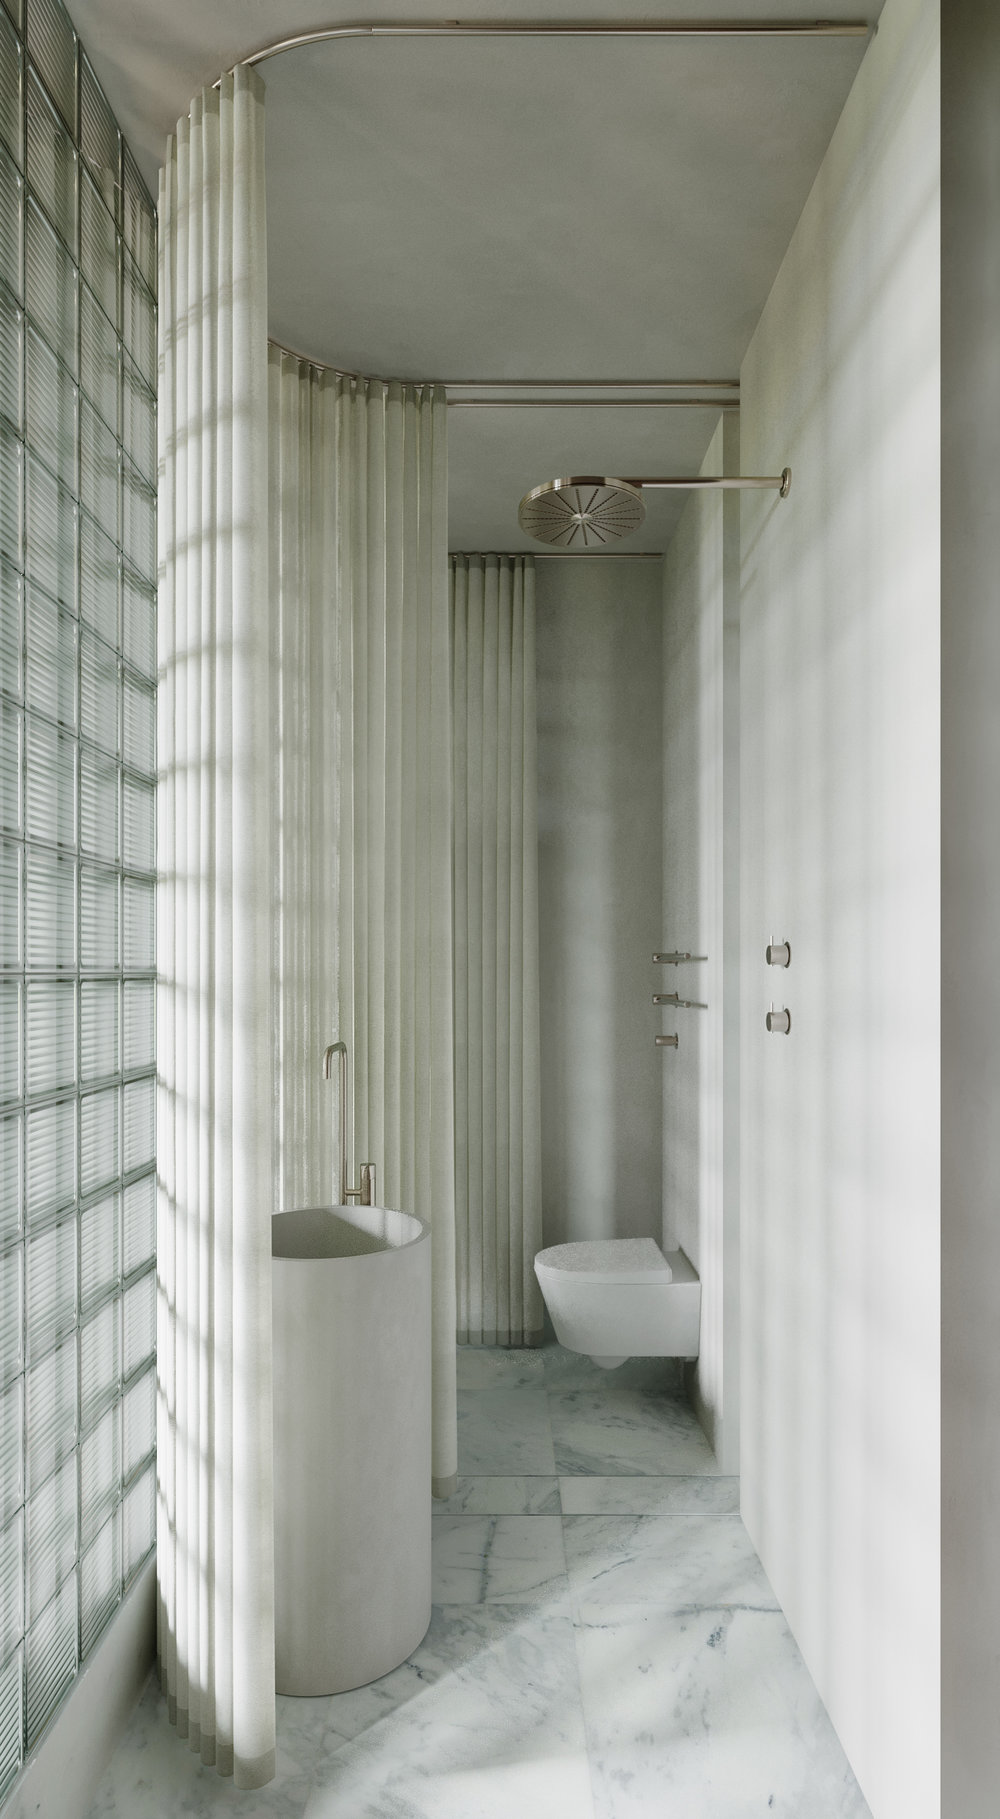 Copy of MRBL project Artem Trigubchak bathroom shower toilet wc glass blocks curtain